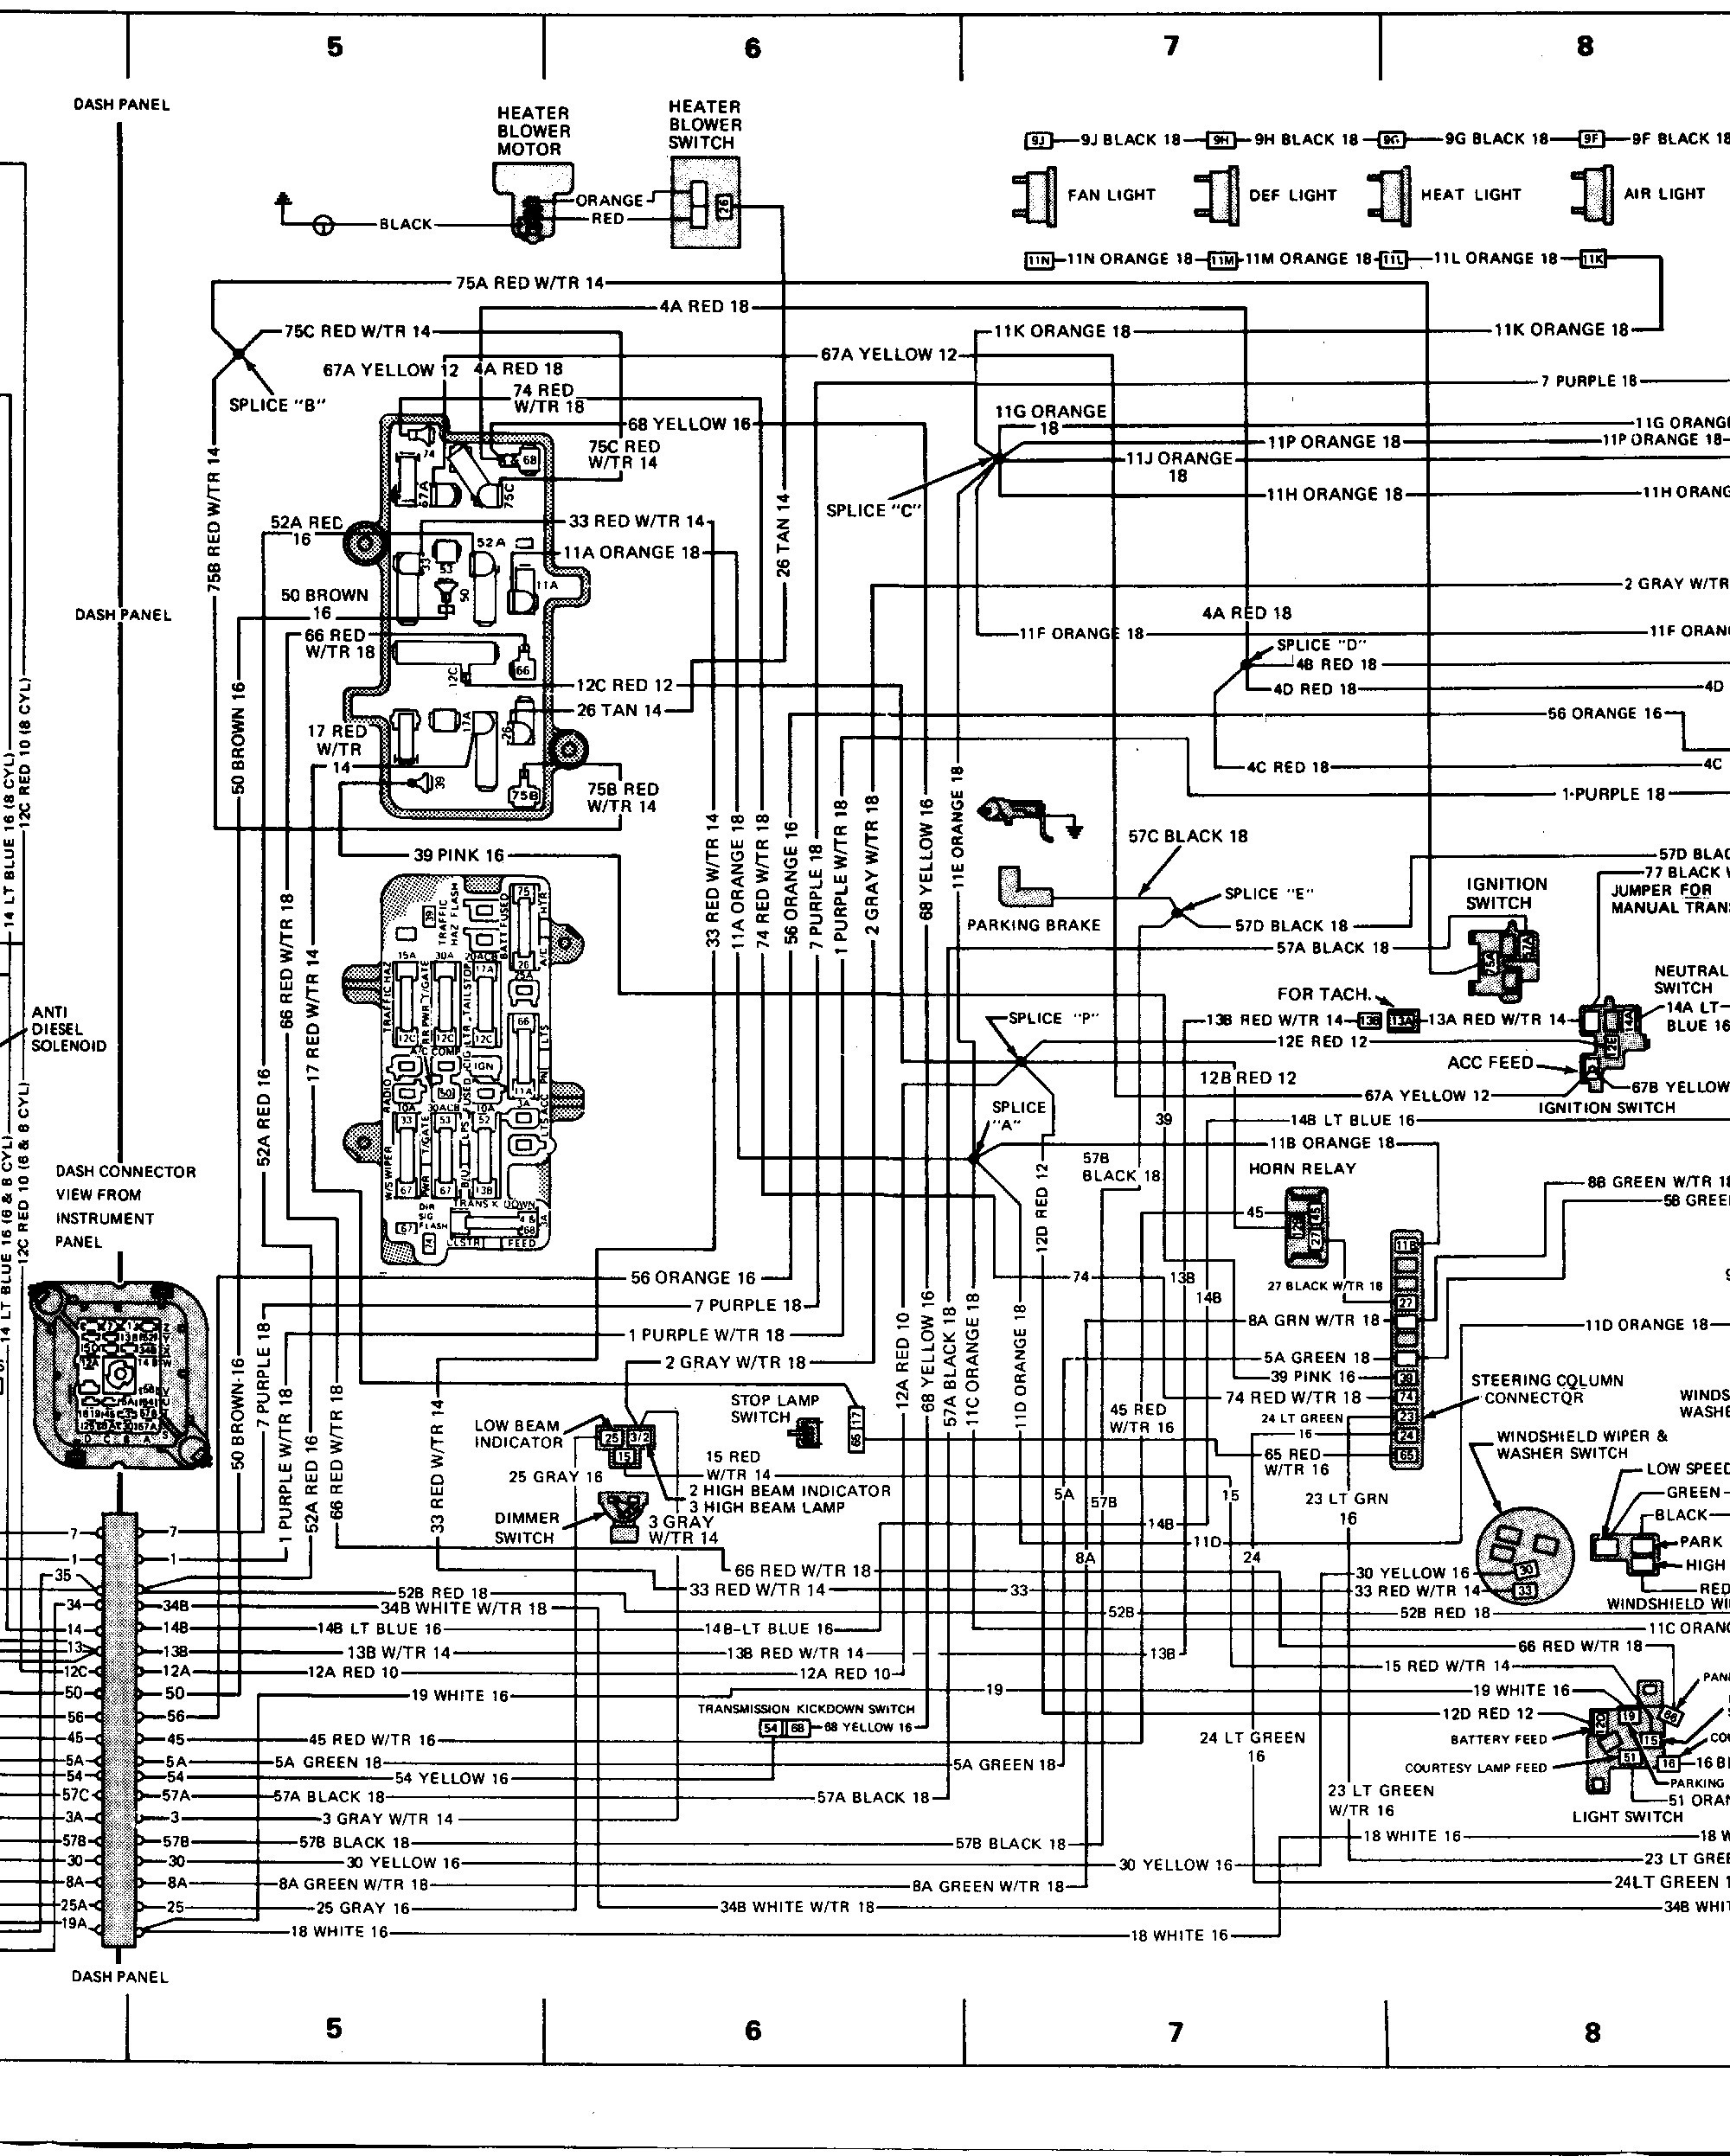 1982 Jeep Cj7 Ignition Wiring Diagram - Wiring Diagram Content Jeep Ignition Wiring Diagrams on